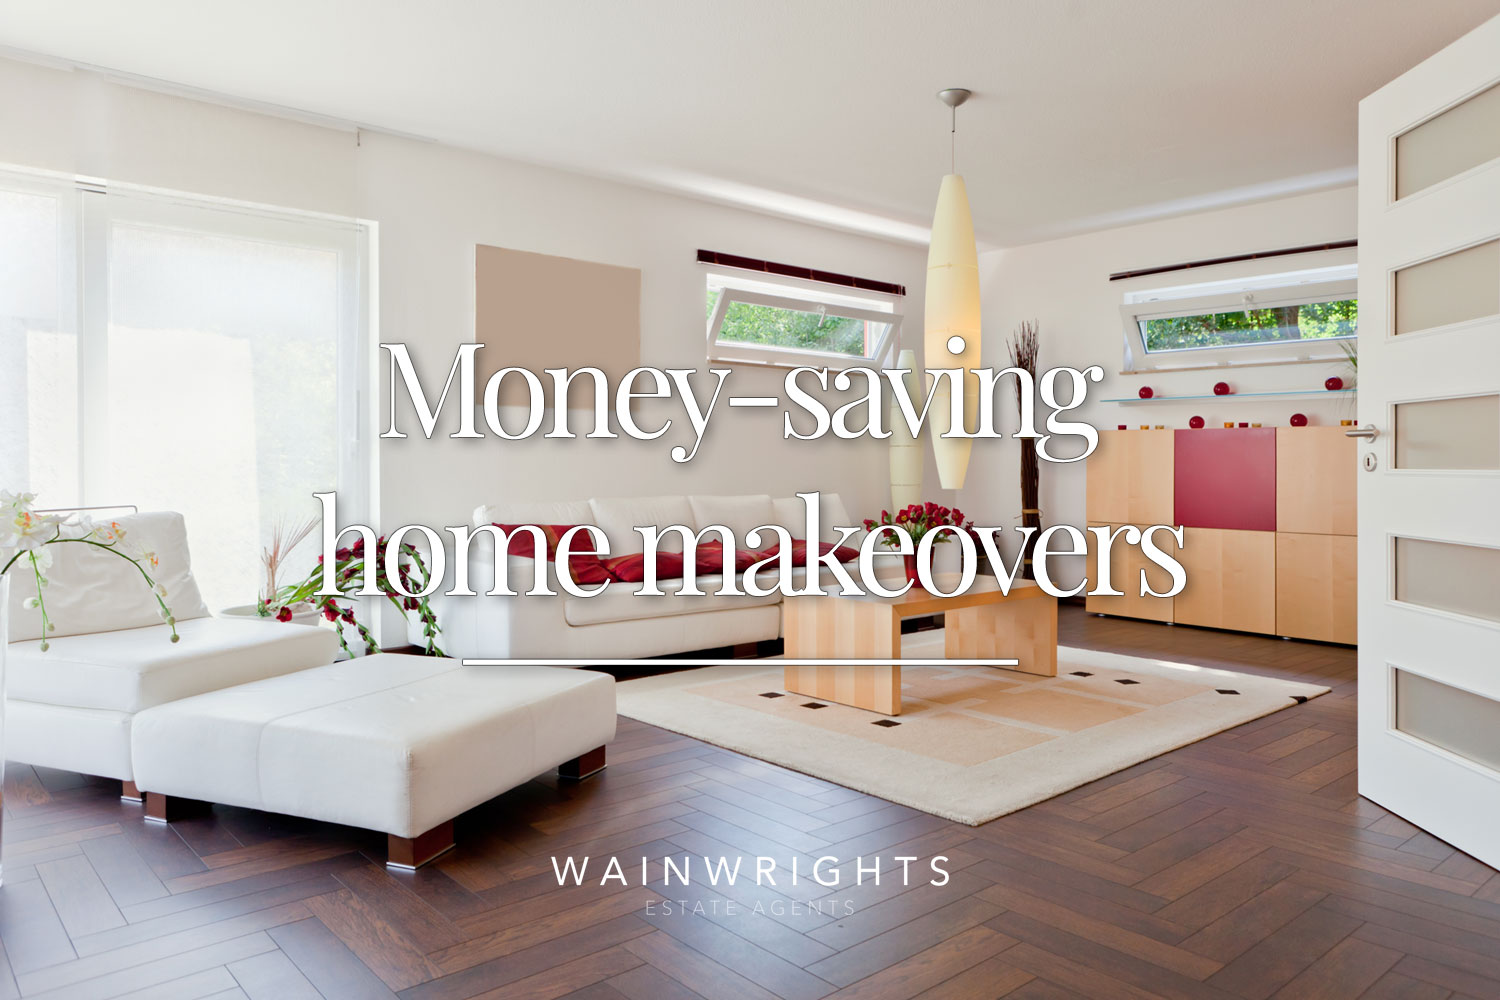 Money-saving-home-makeovers